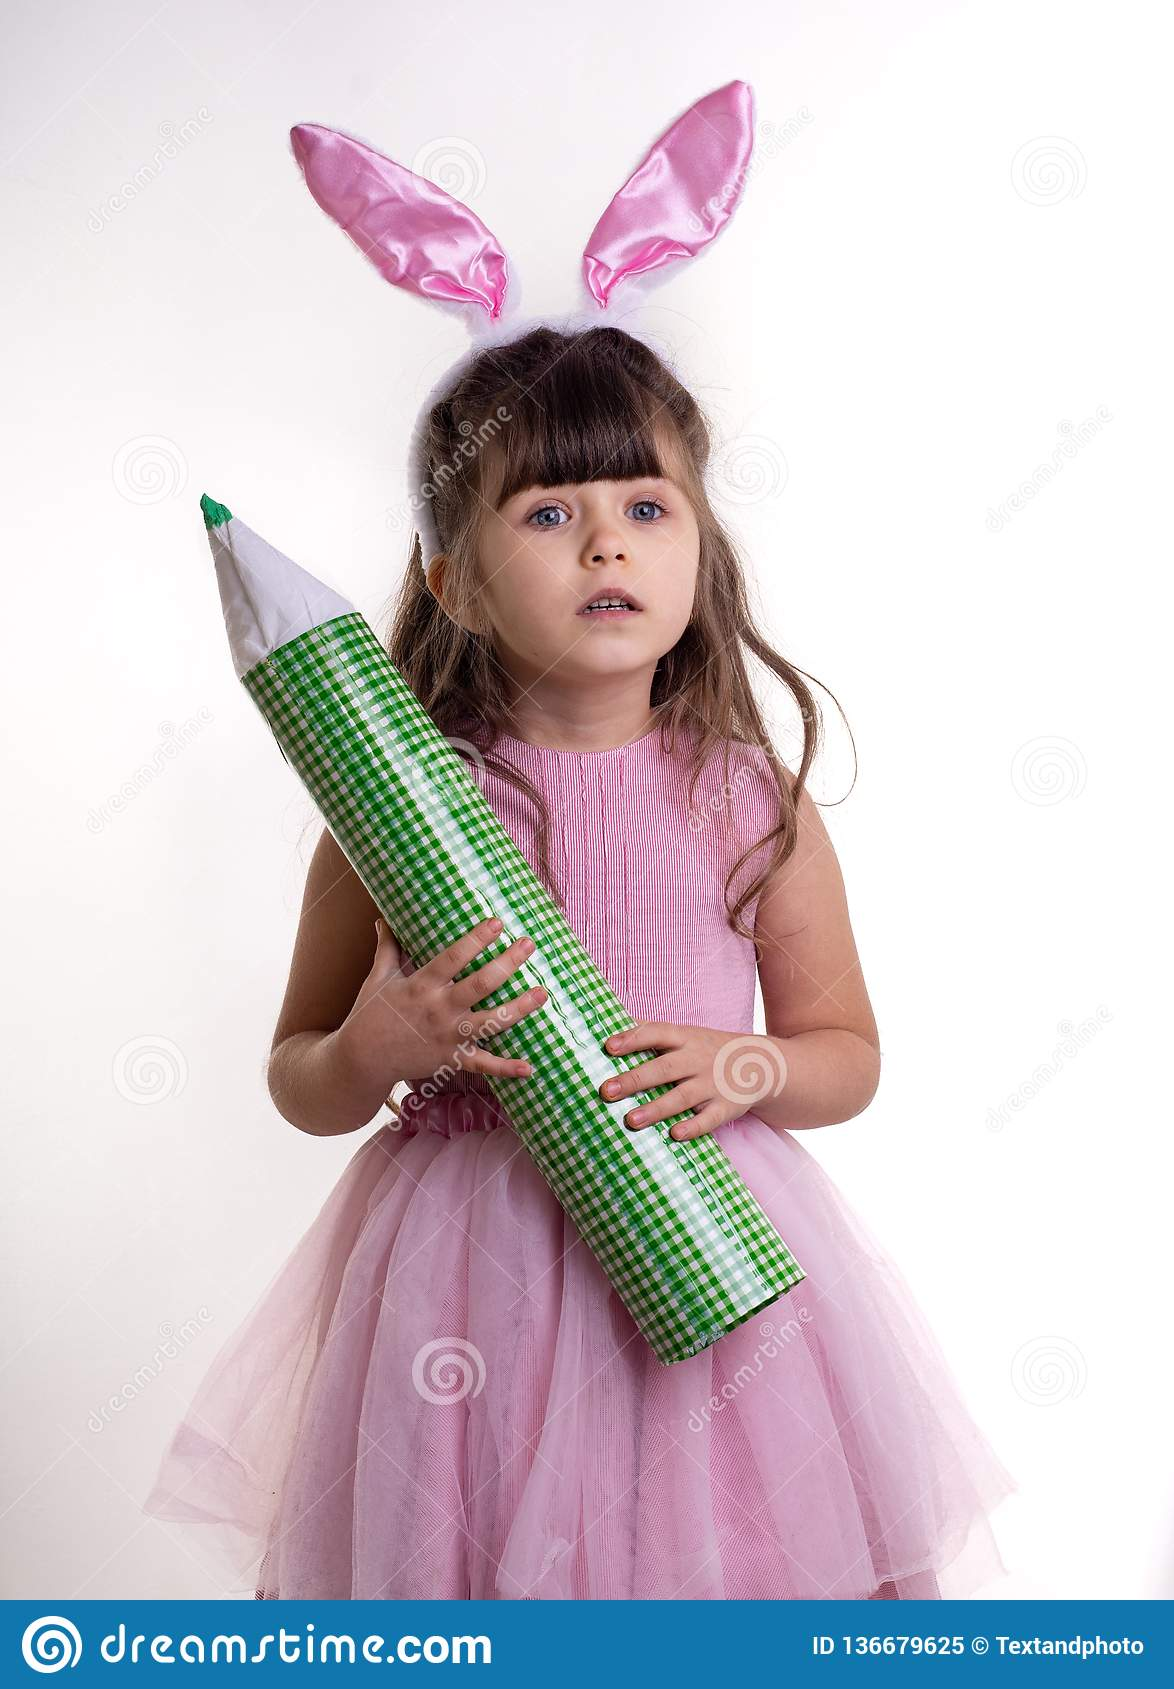 Little girl dressed as the Easter bunny standing on white background and holding pencil